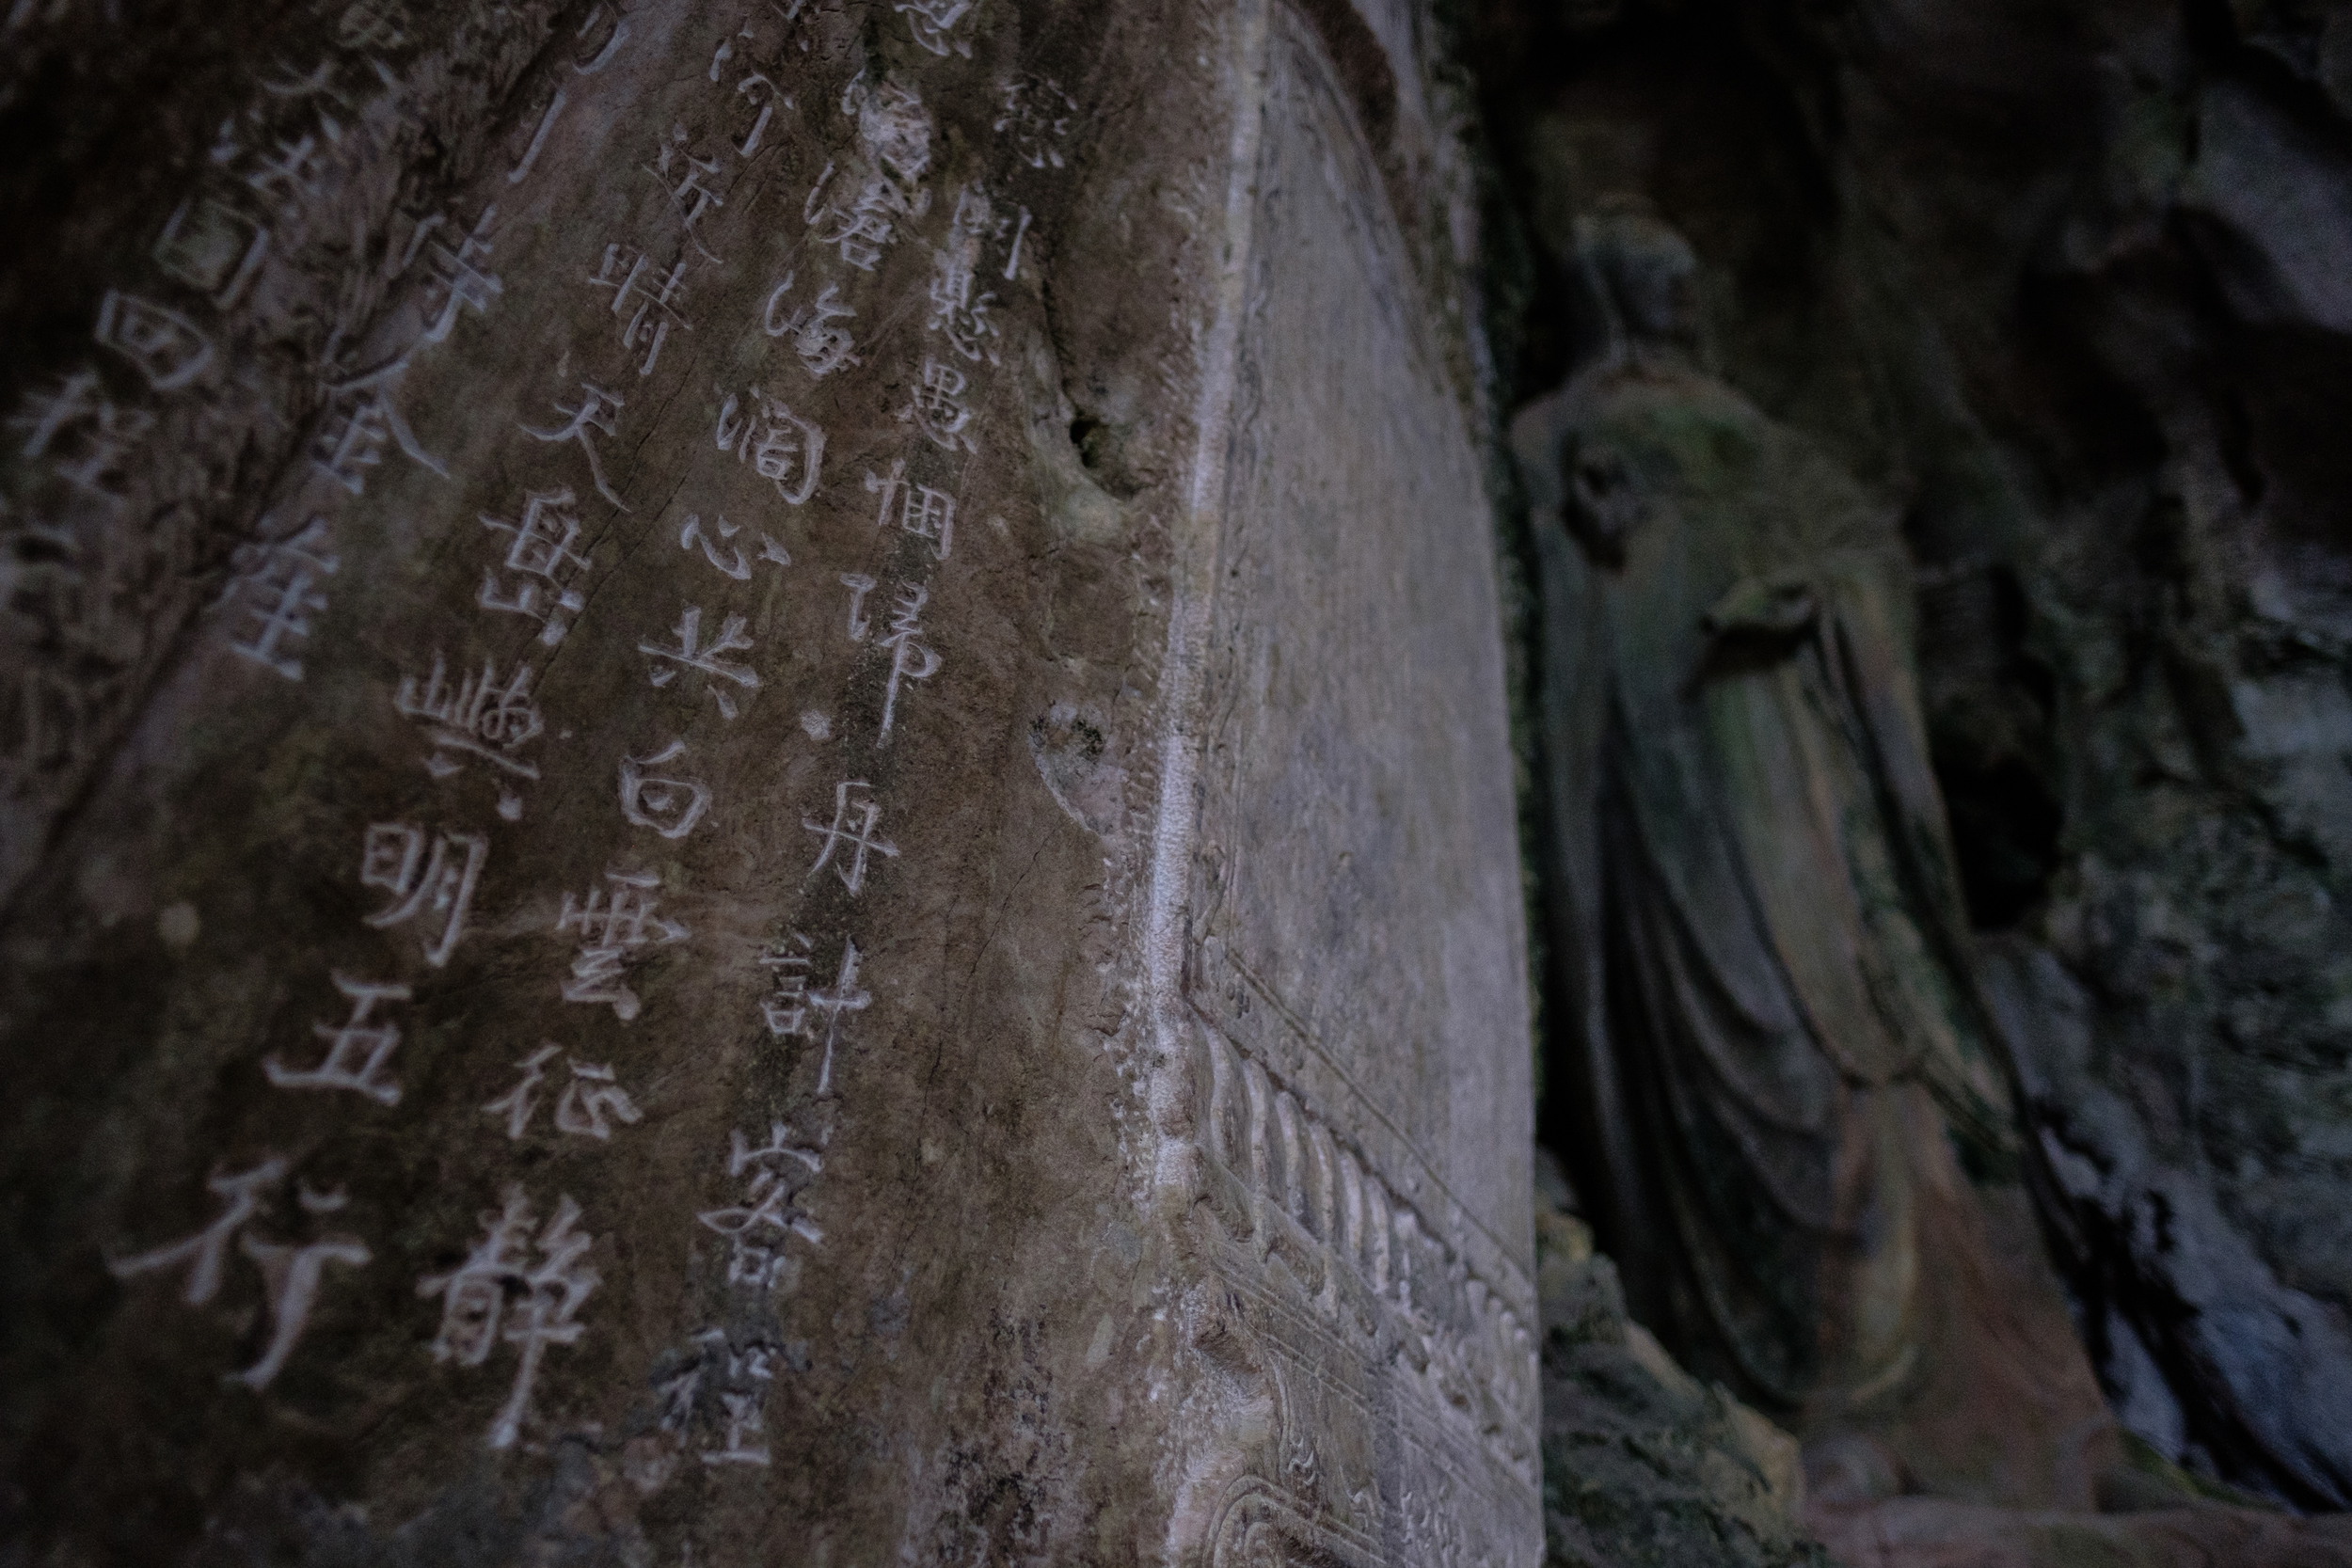 Inscriptions by the entrance to a cave temple.